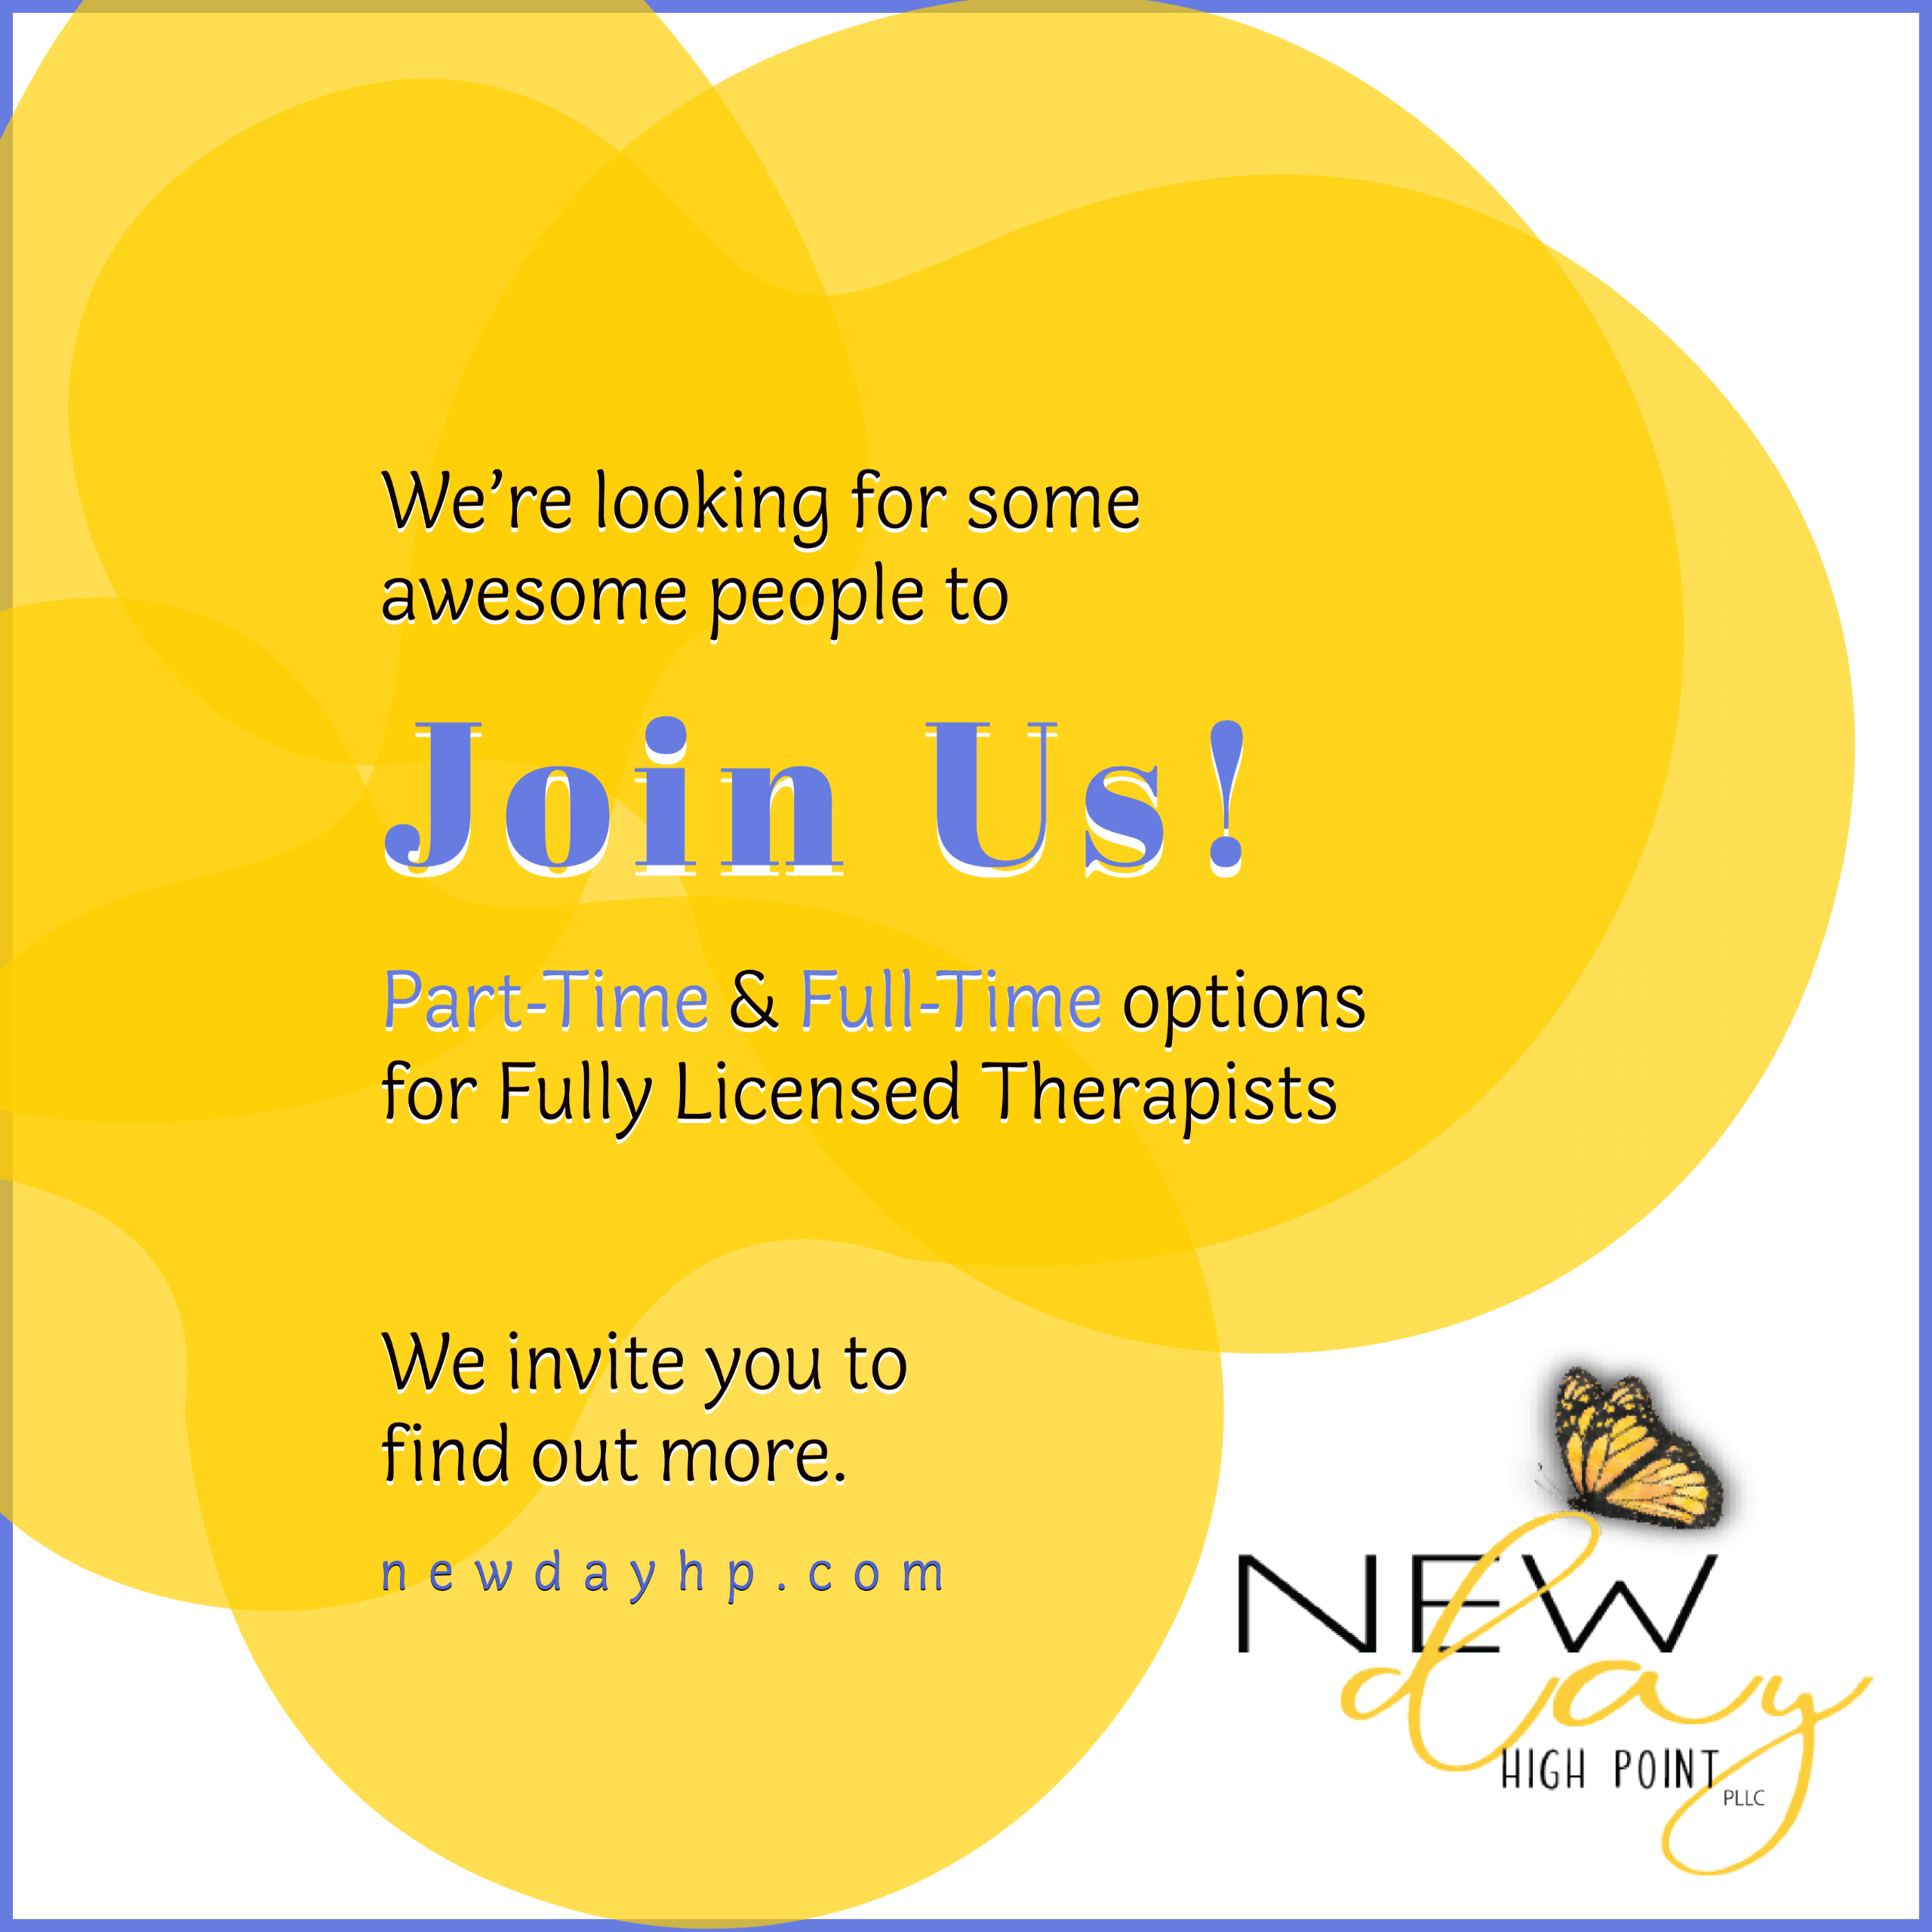 We're looking for some awesome therapists to join us! New Day High Point